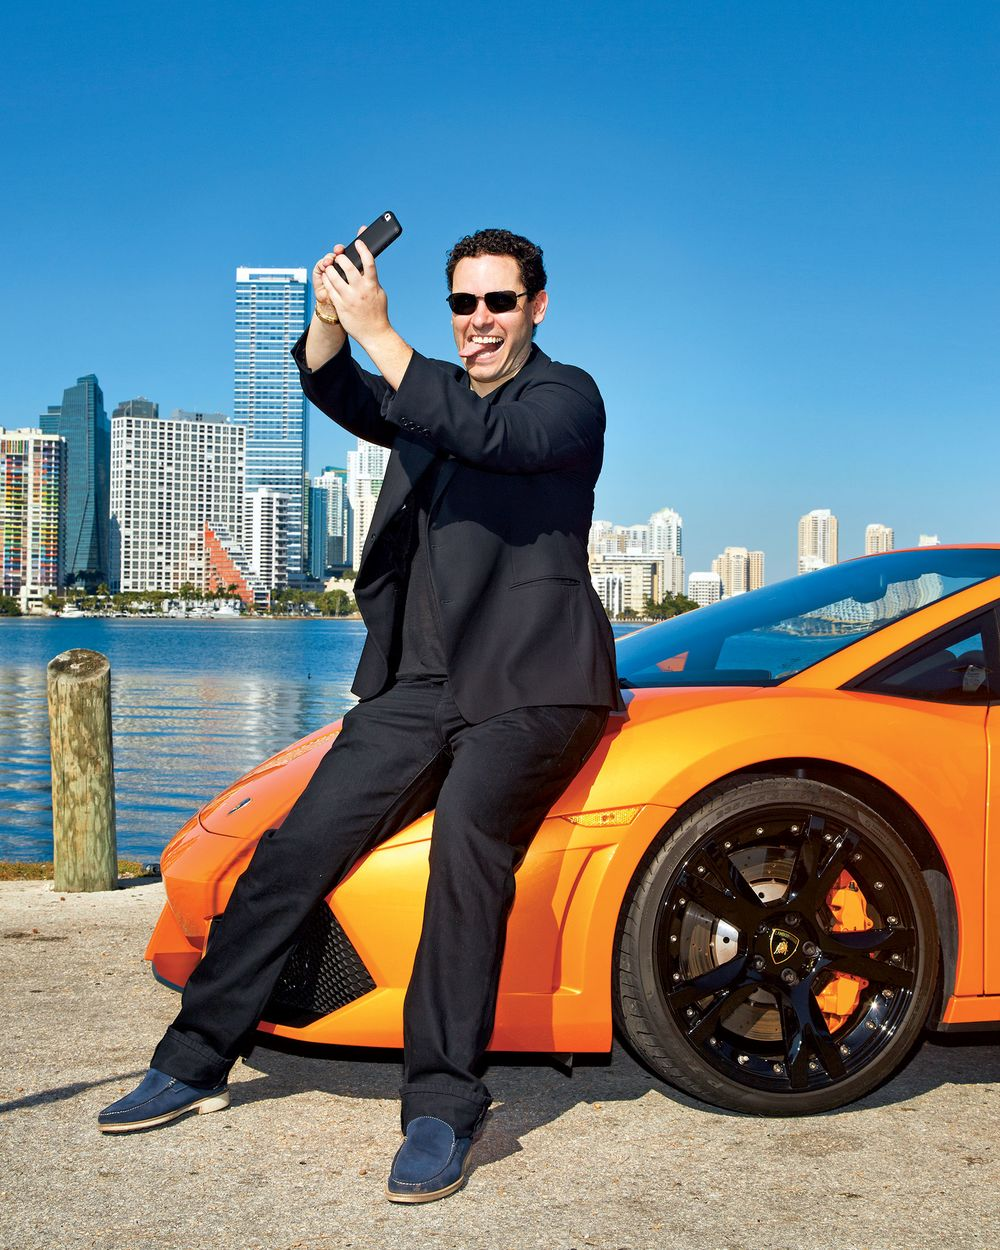 a3a8feec432 Penny-Stock Guru Tim Sykes Embraces Role of 'Rich Douche Bag ...